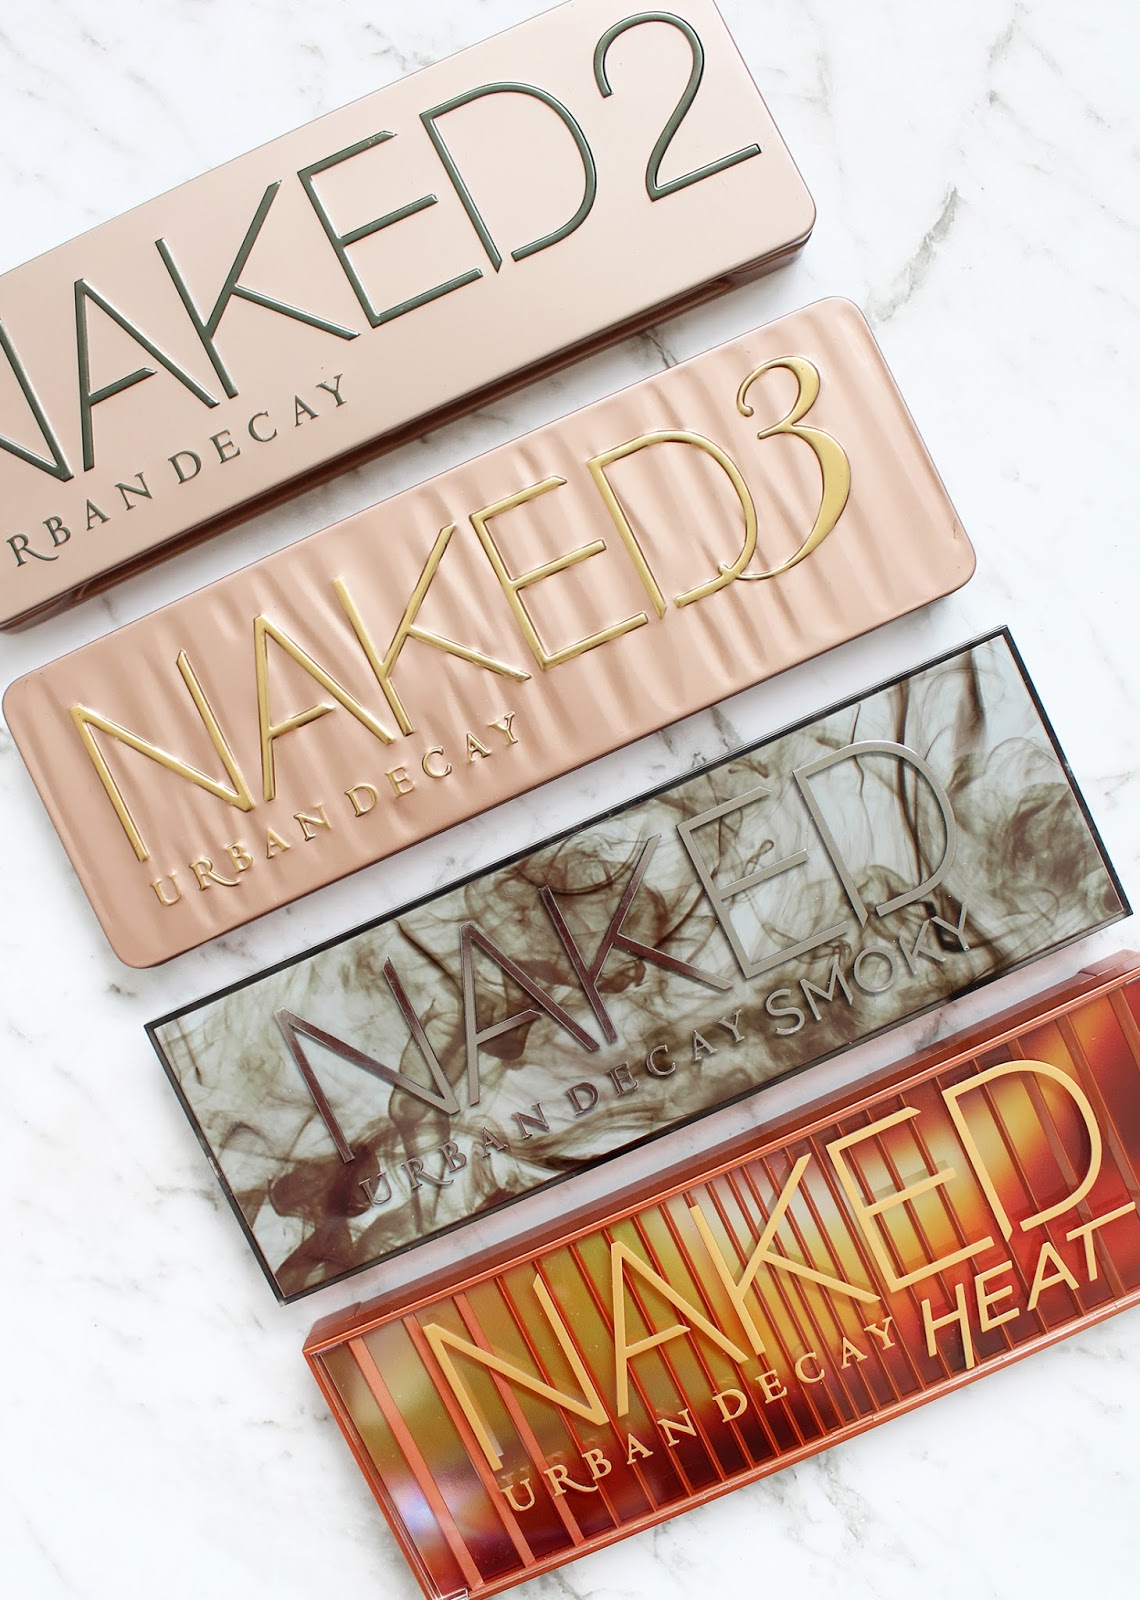 URBAN DECAY | Naked Heat Palette - Review + Swatches - CassandraMyee